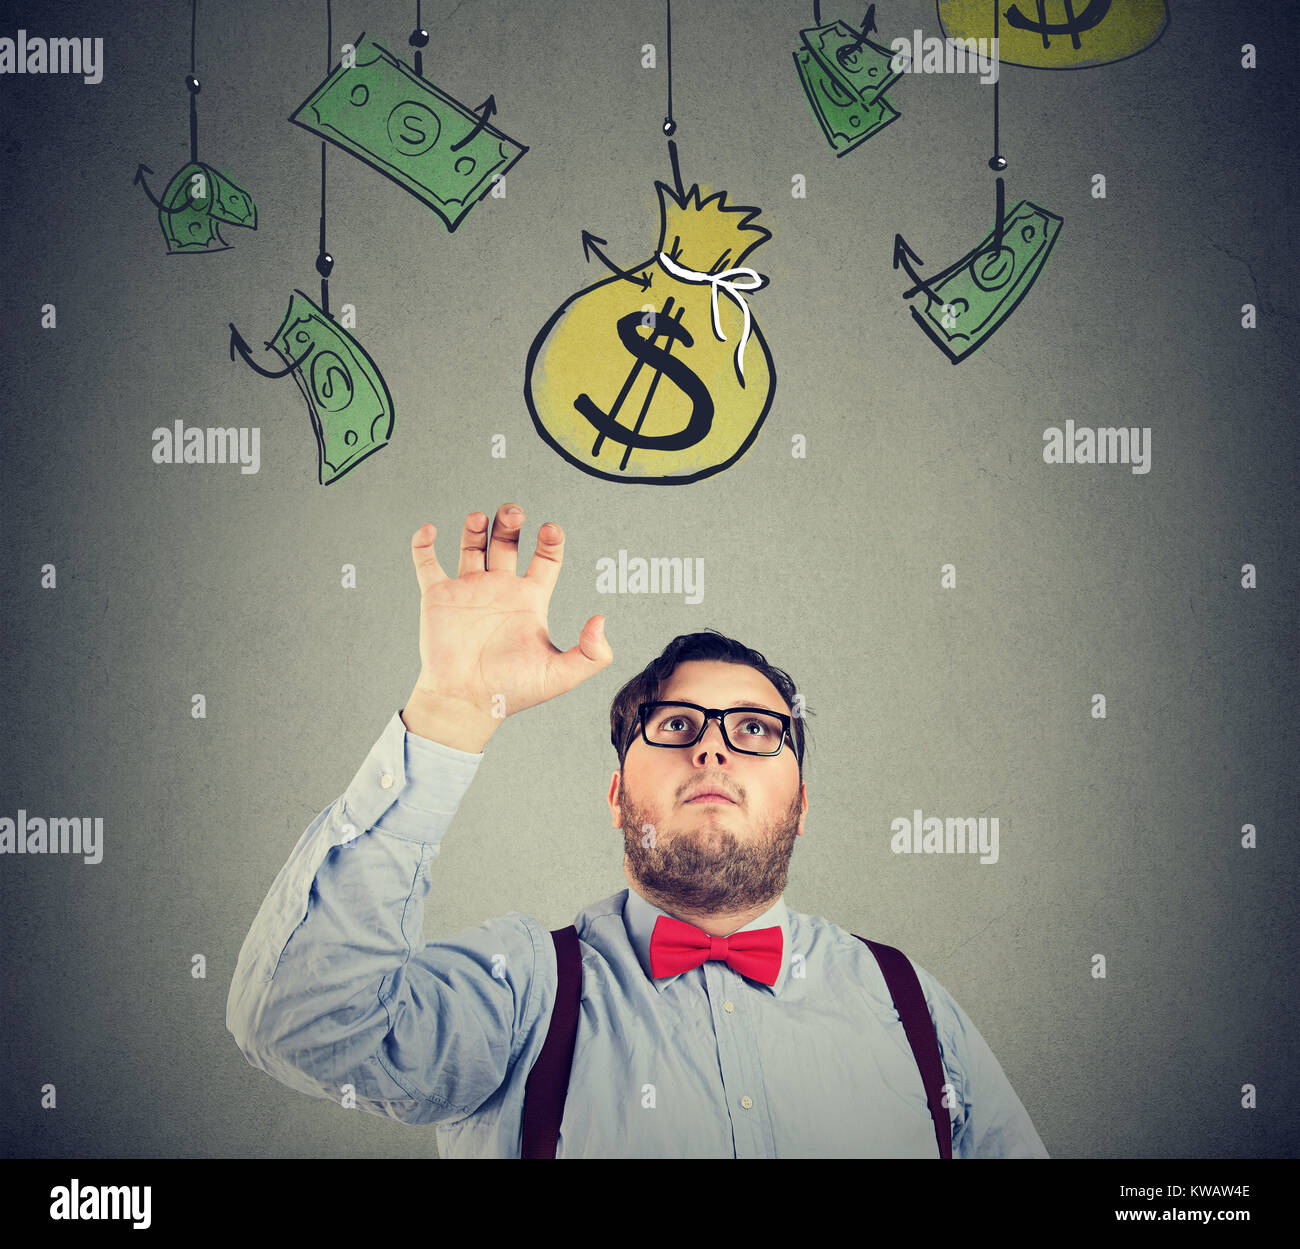 Chunky man in formal clothing grabbing sack of money conducting business. - Stock Image